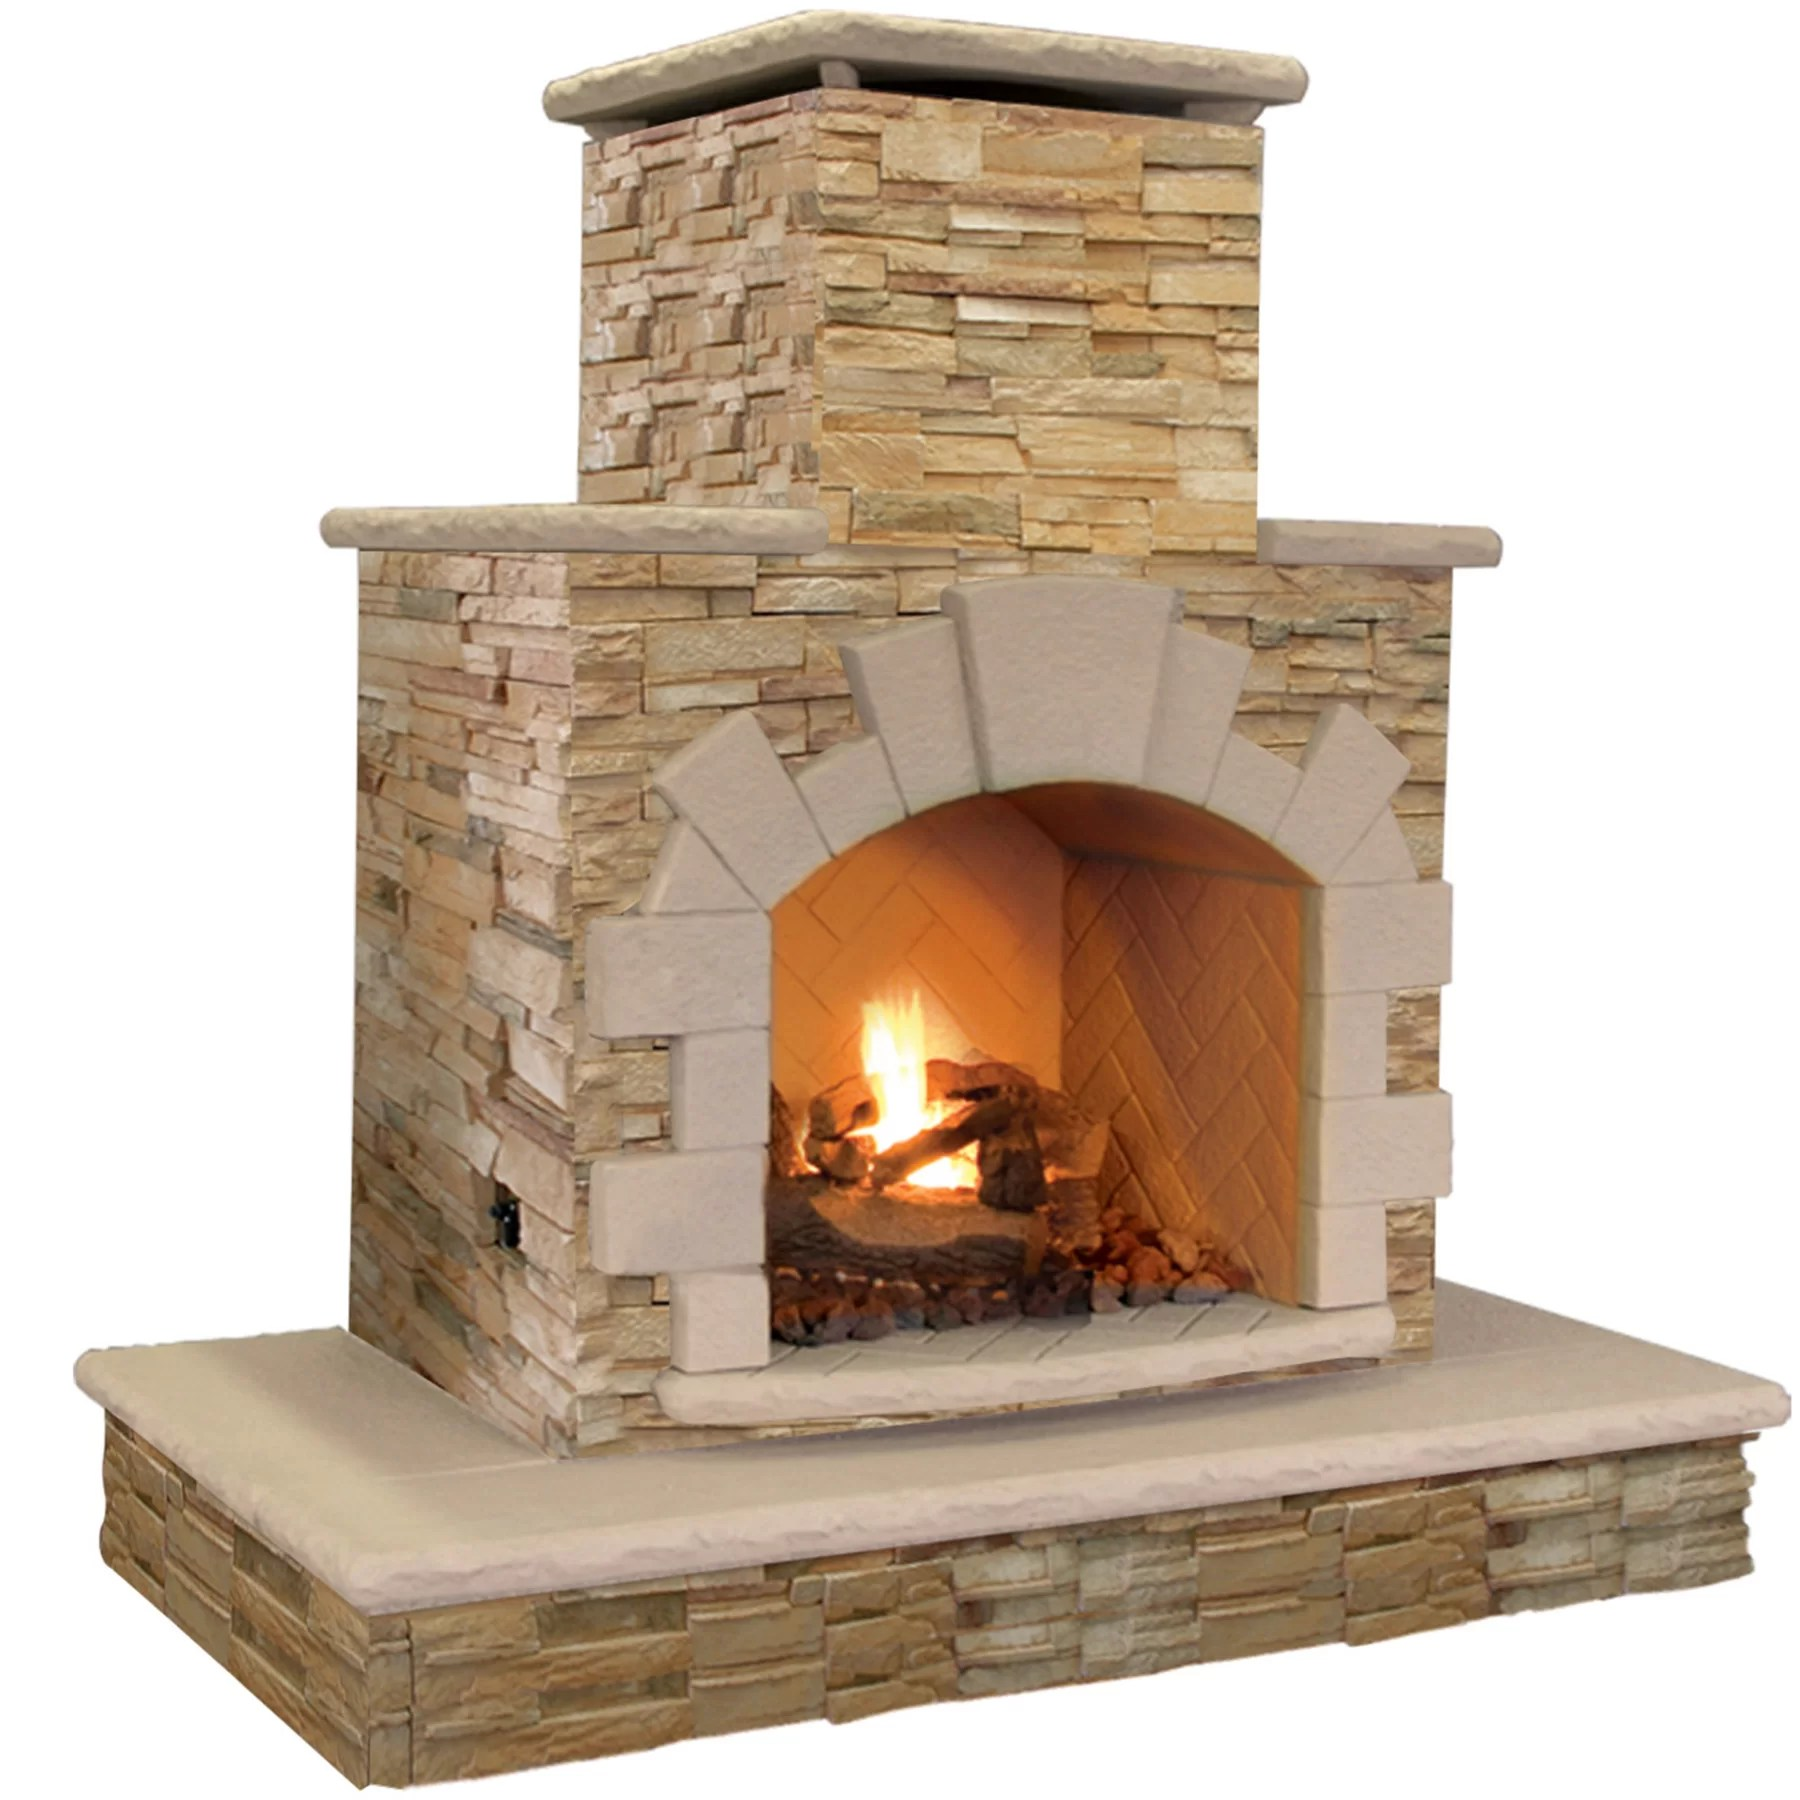 Feuerstelle Naturstein Natural Stone Propane / Gas Outdoor Fireplace | Wayfair